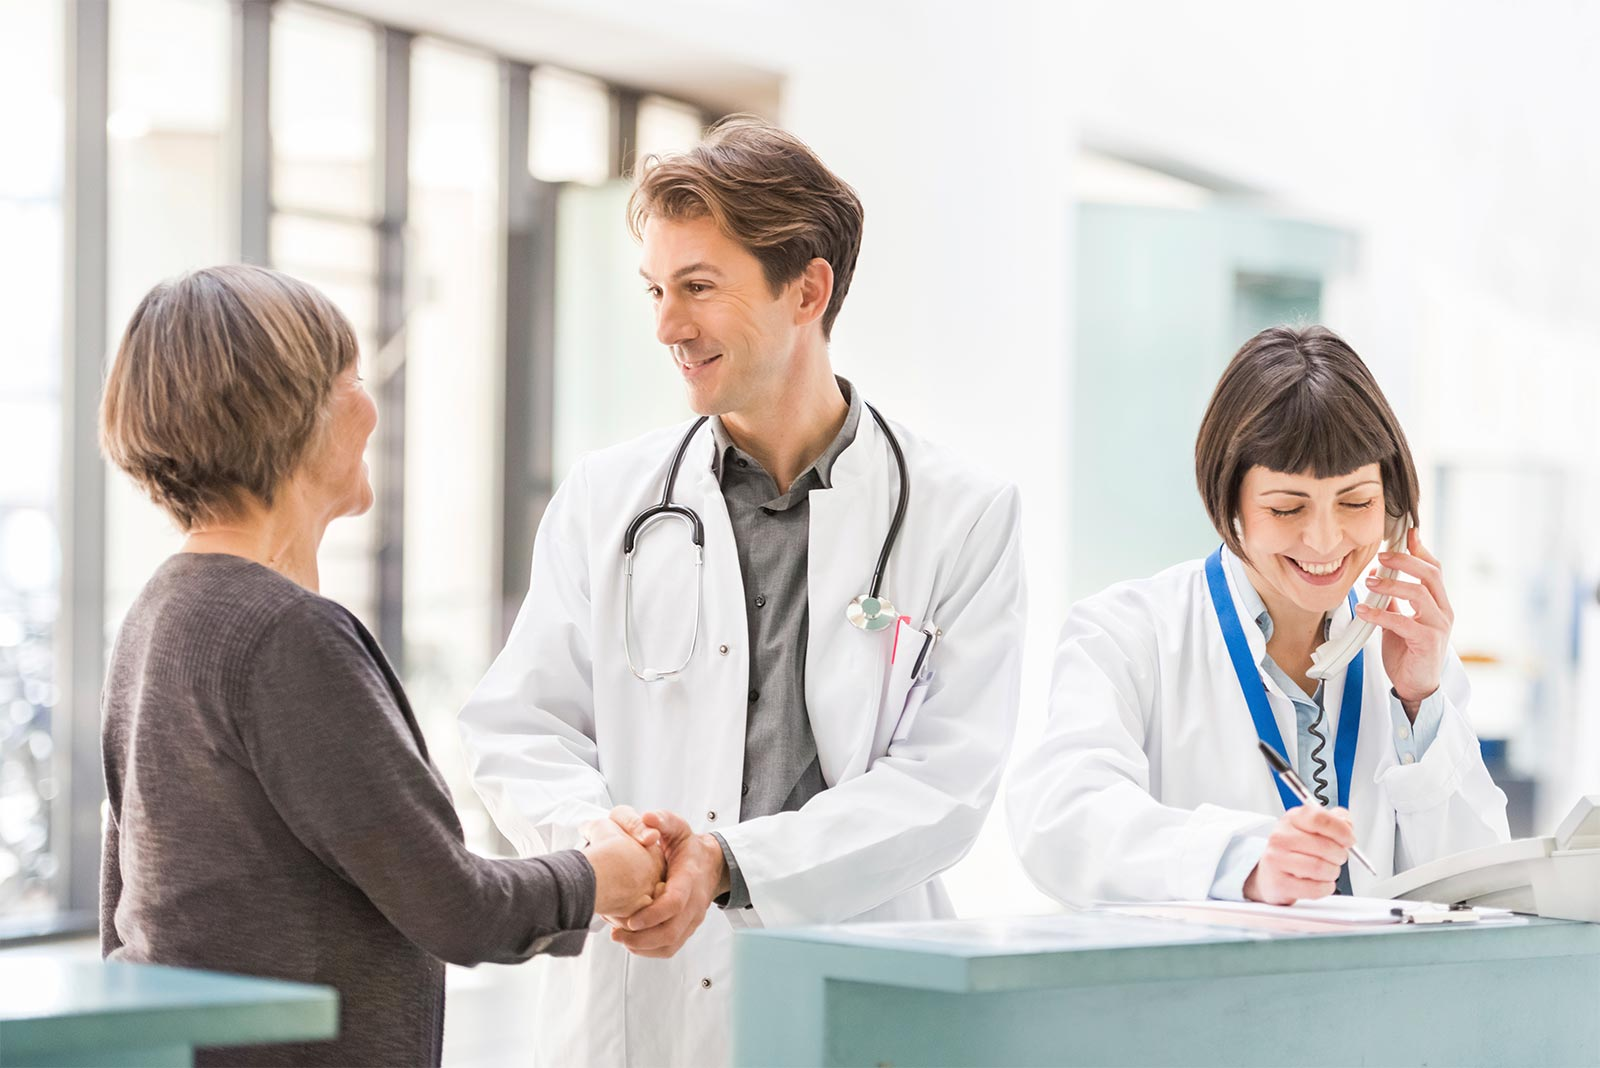 A doctor shaking hands with a patient, and another doctor talking on the phone, in a medical office.